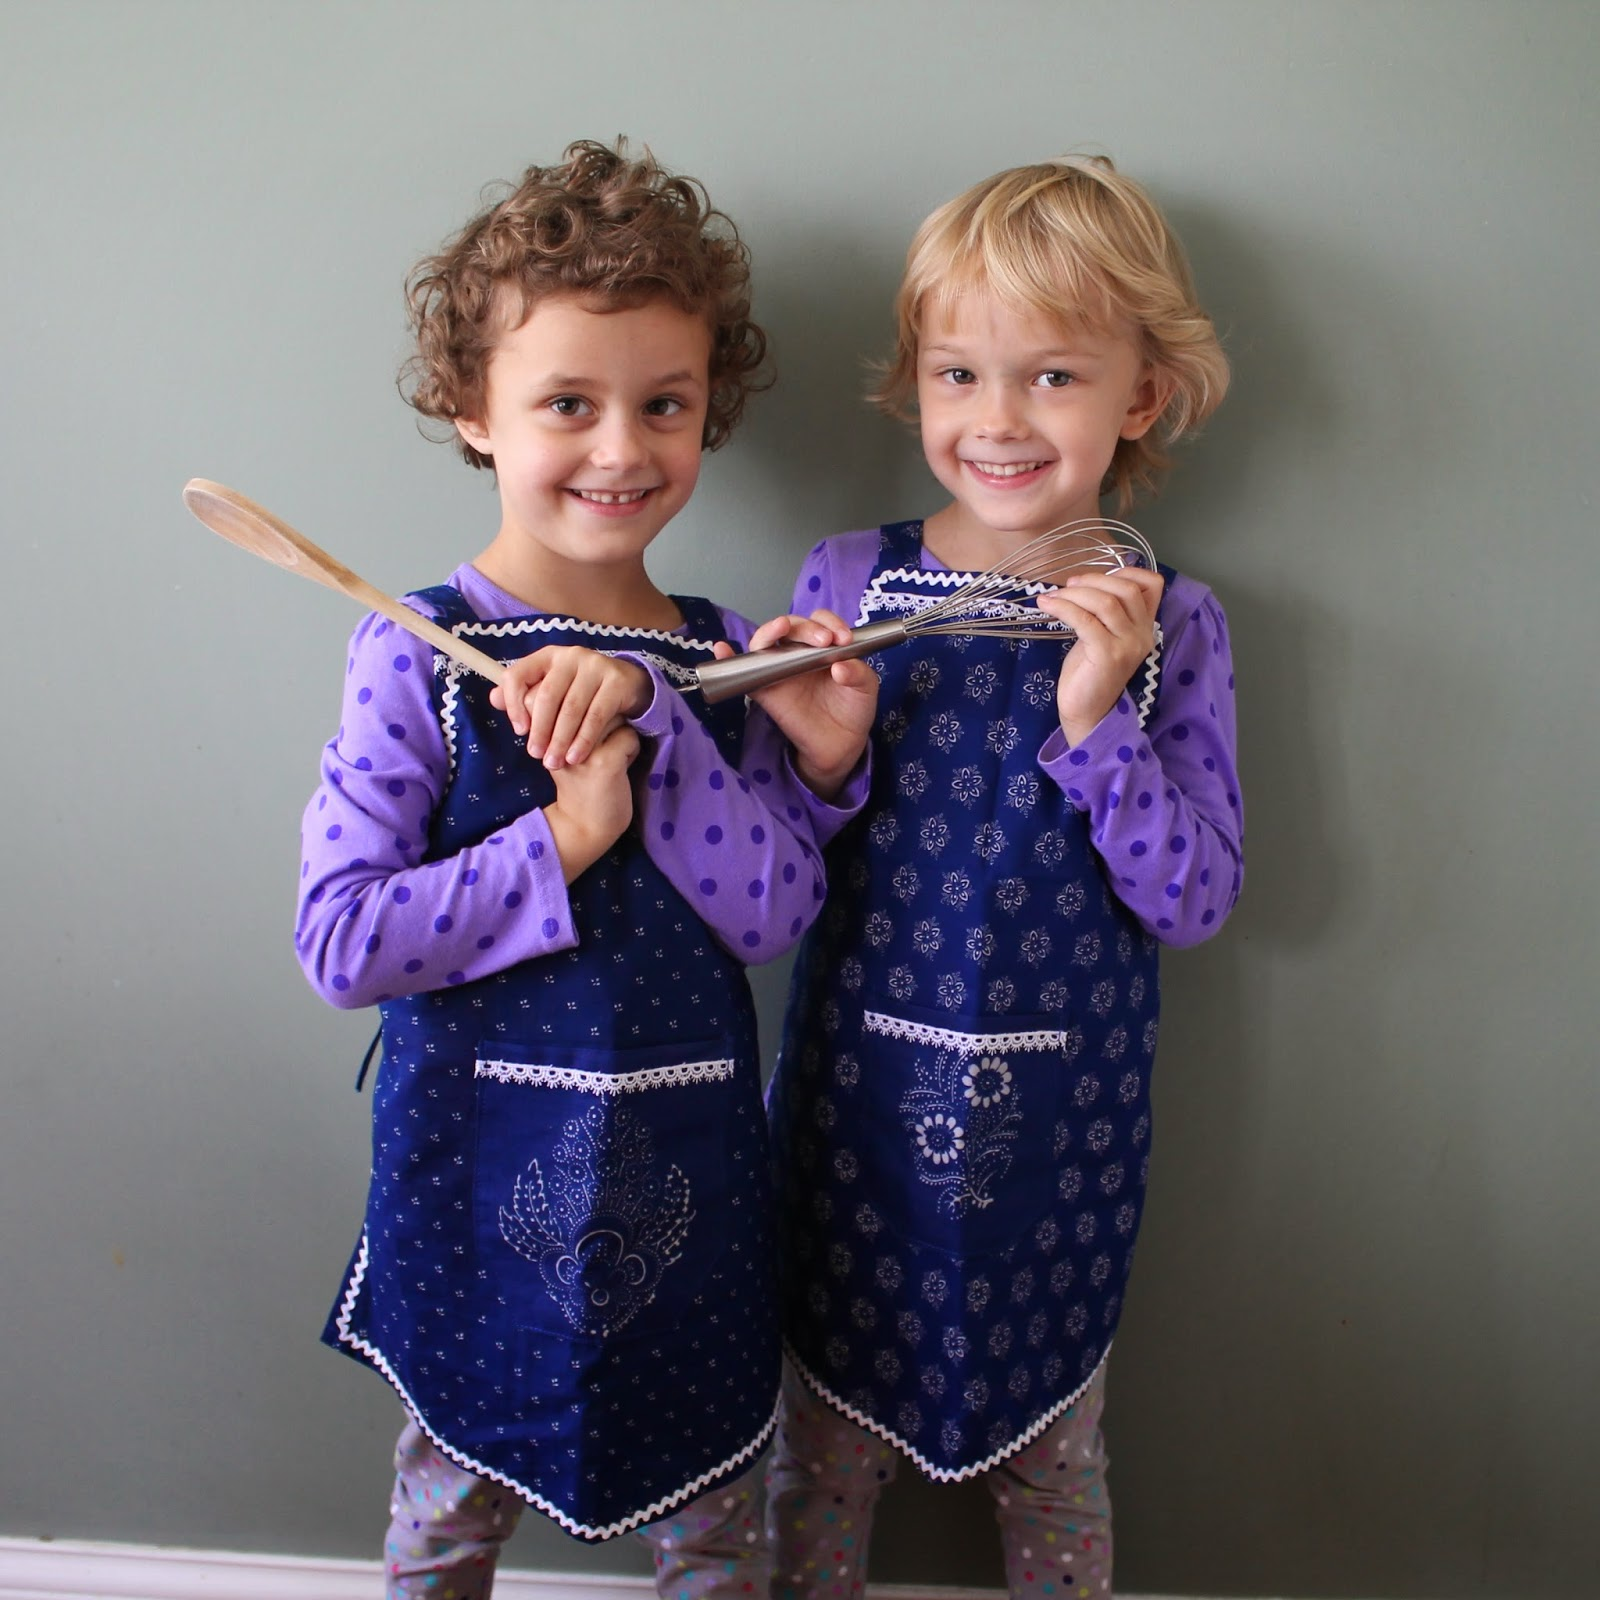 Blue-dye apron on little girls